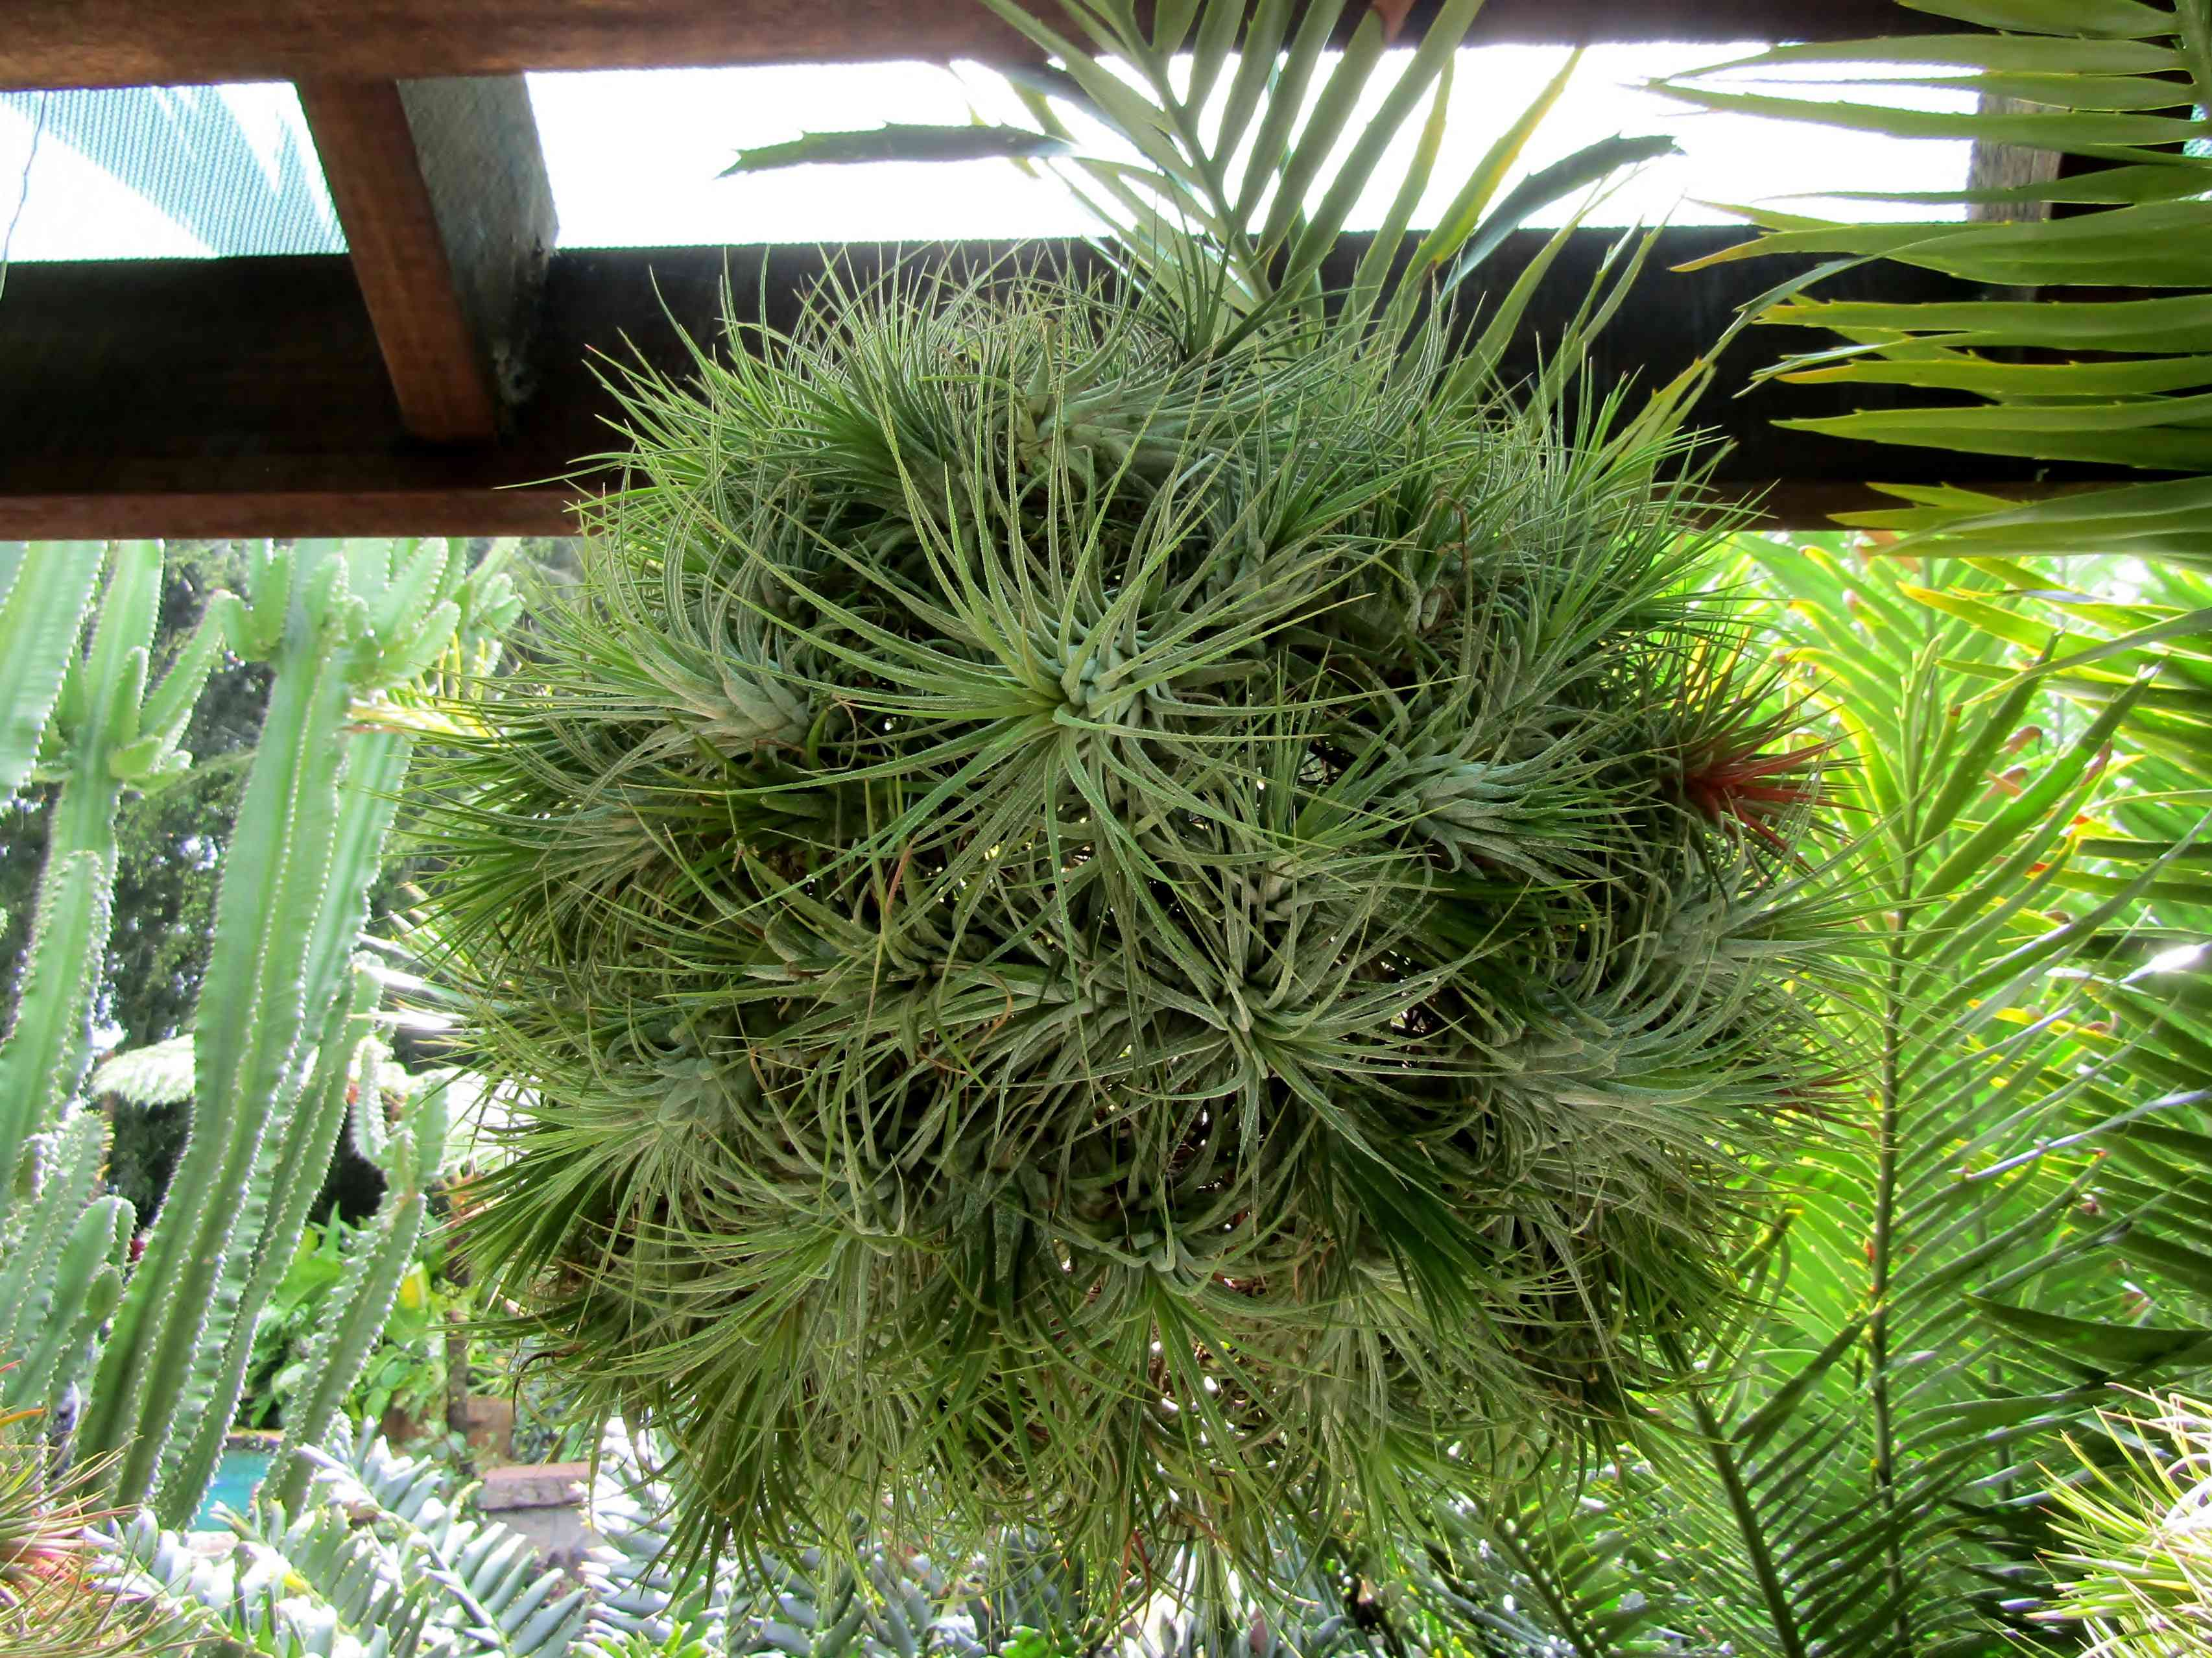 Mad Pupper air plant shaped as a hanging ball of green leaves